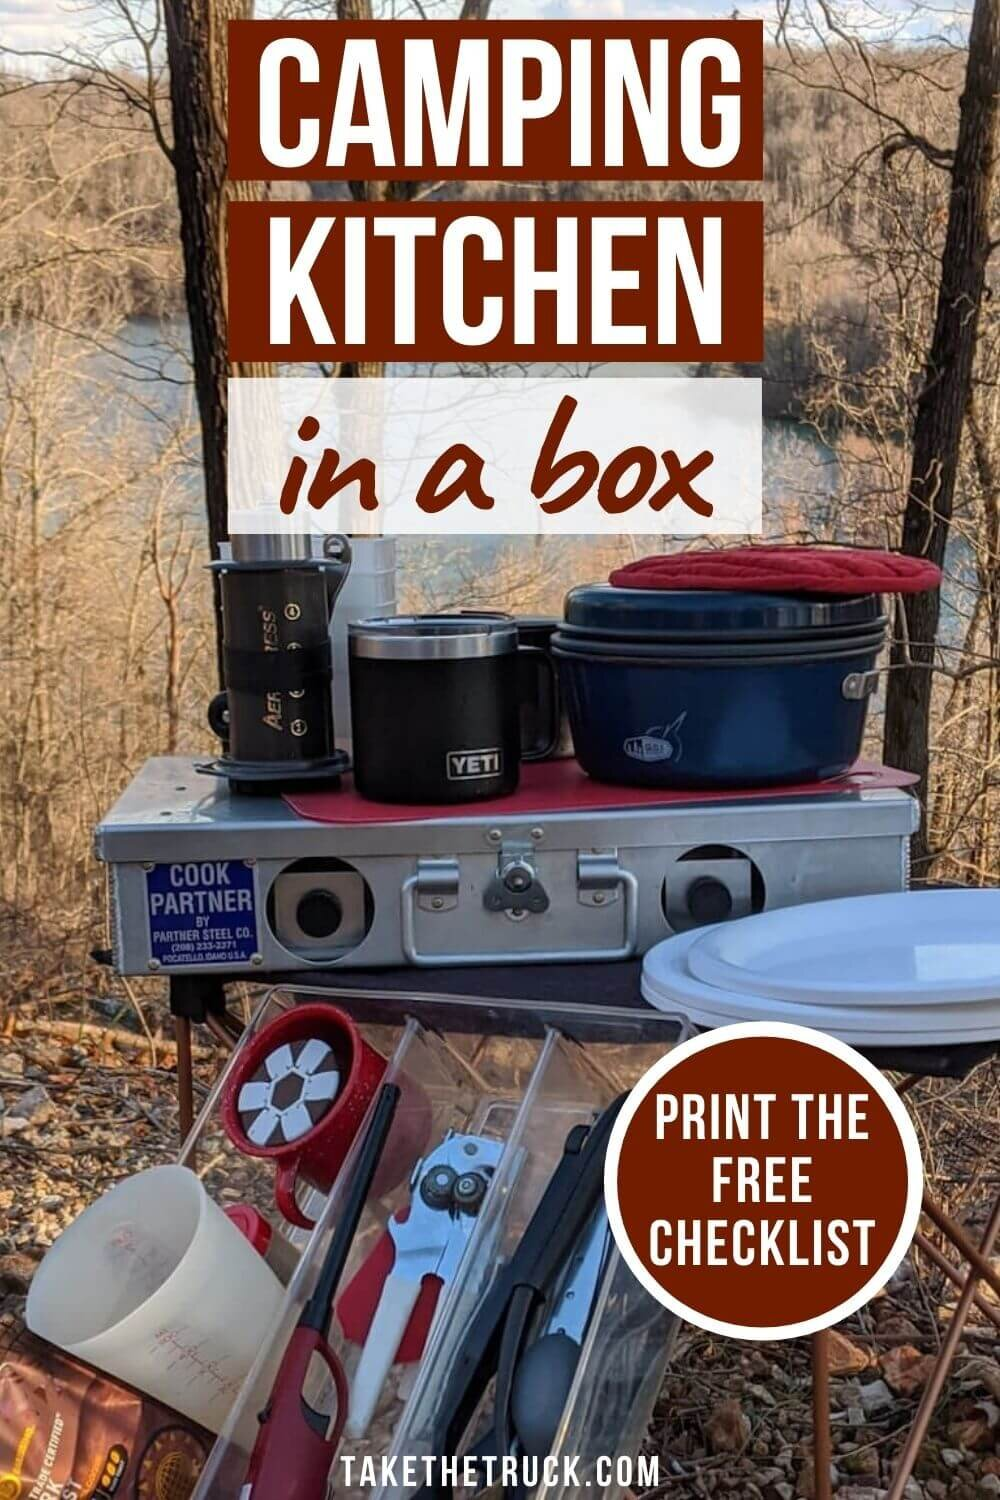 Camping kitchen supplies and tips for set up.